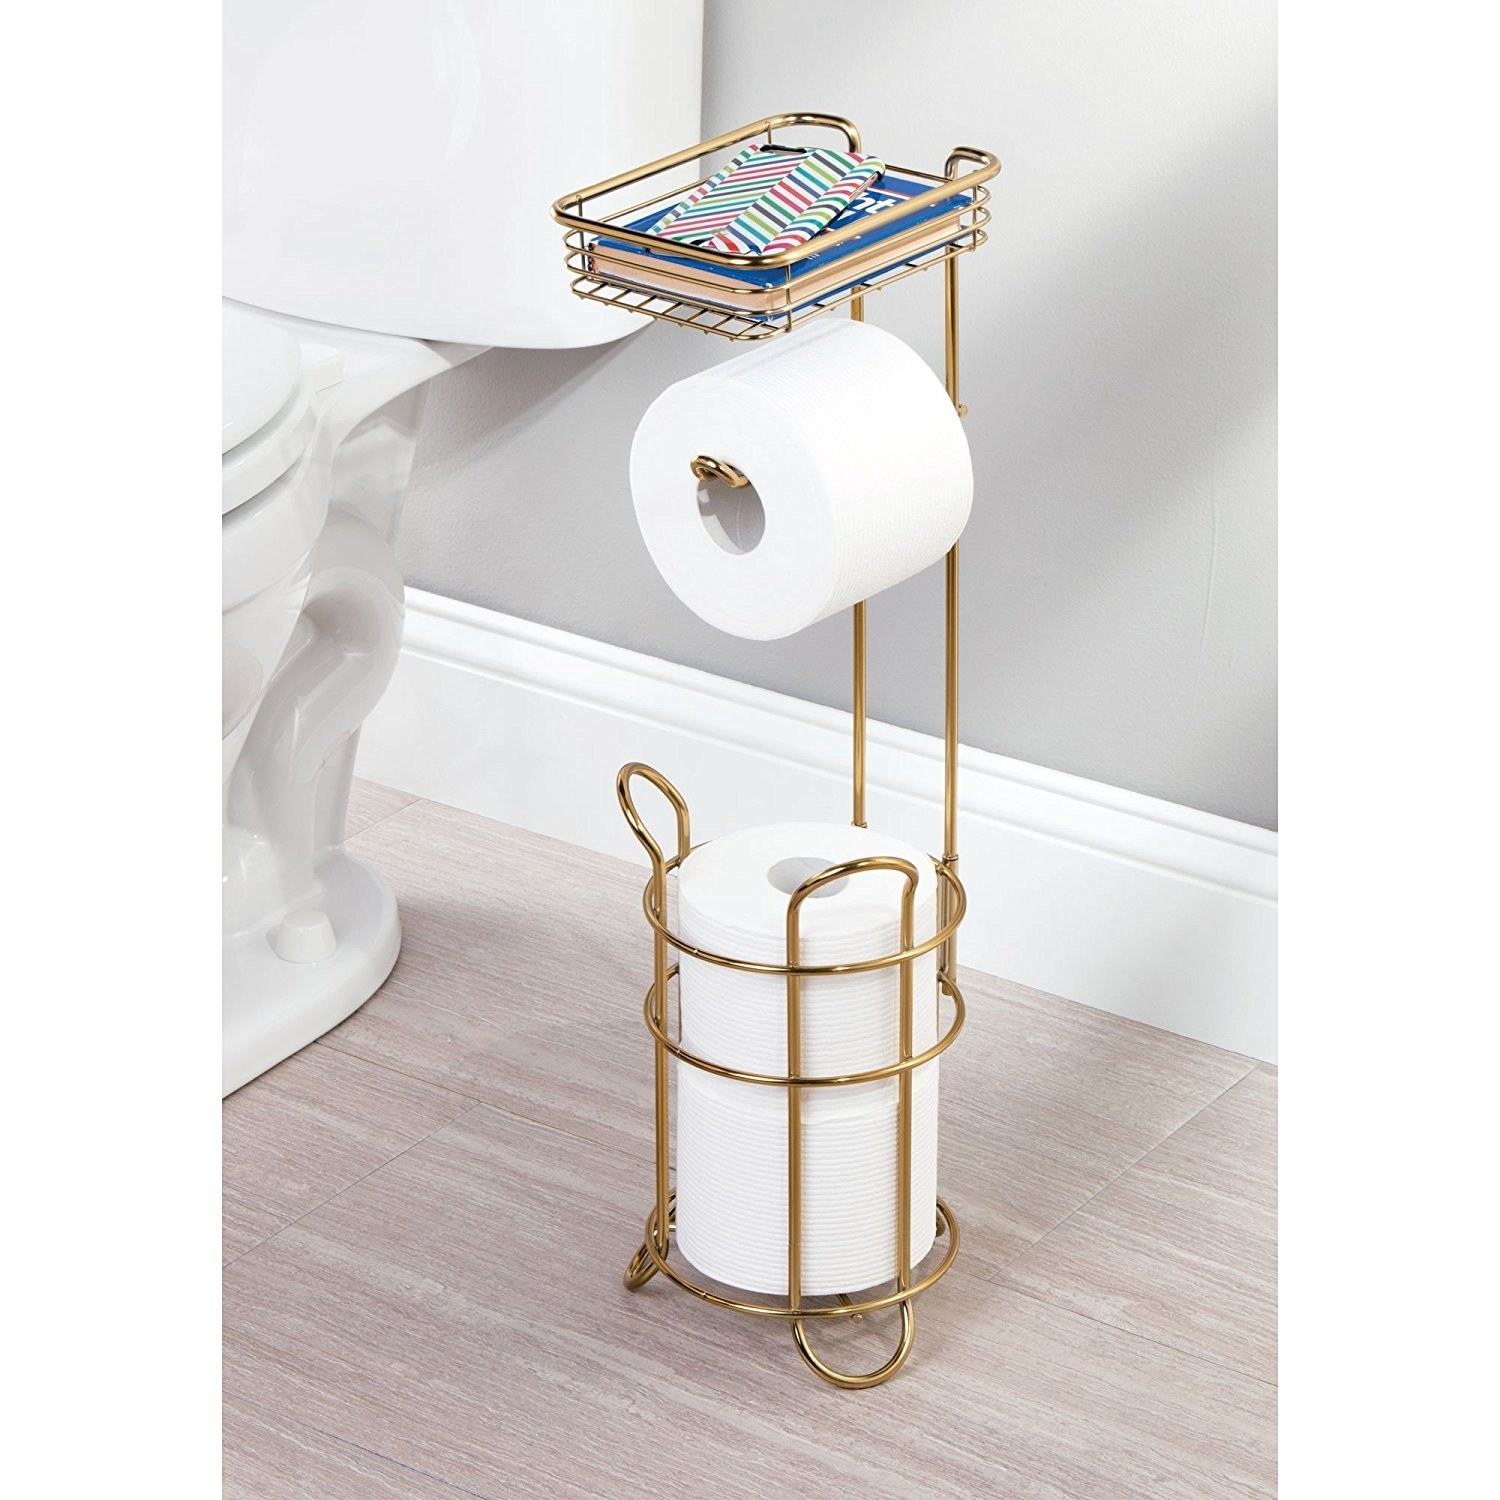 Bathroom Fixtures Self-Conscious New Arrivial Kitchen Towel Holder Roll Paper Storage Rack Tissue Hanger Under Cabinet Door High Resilience Bathroom Hardware